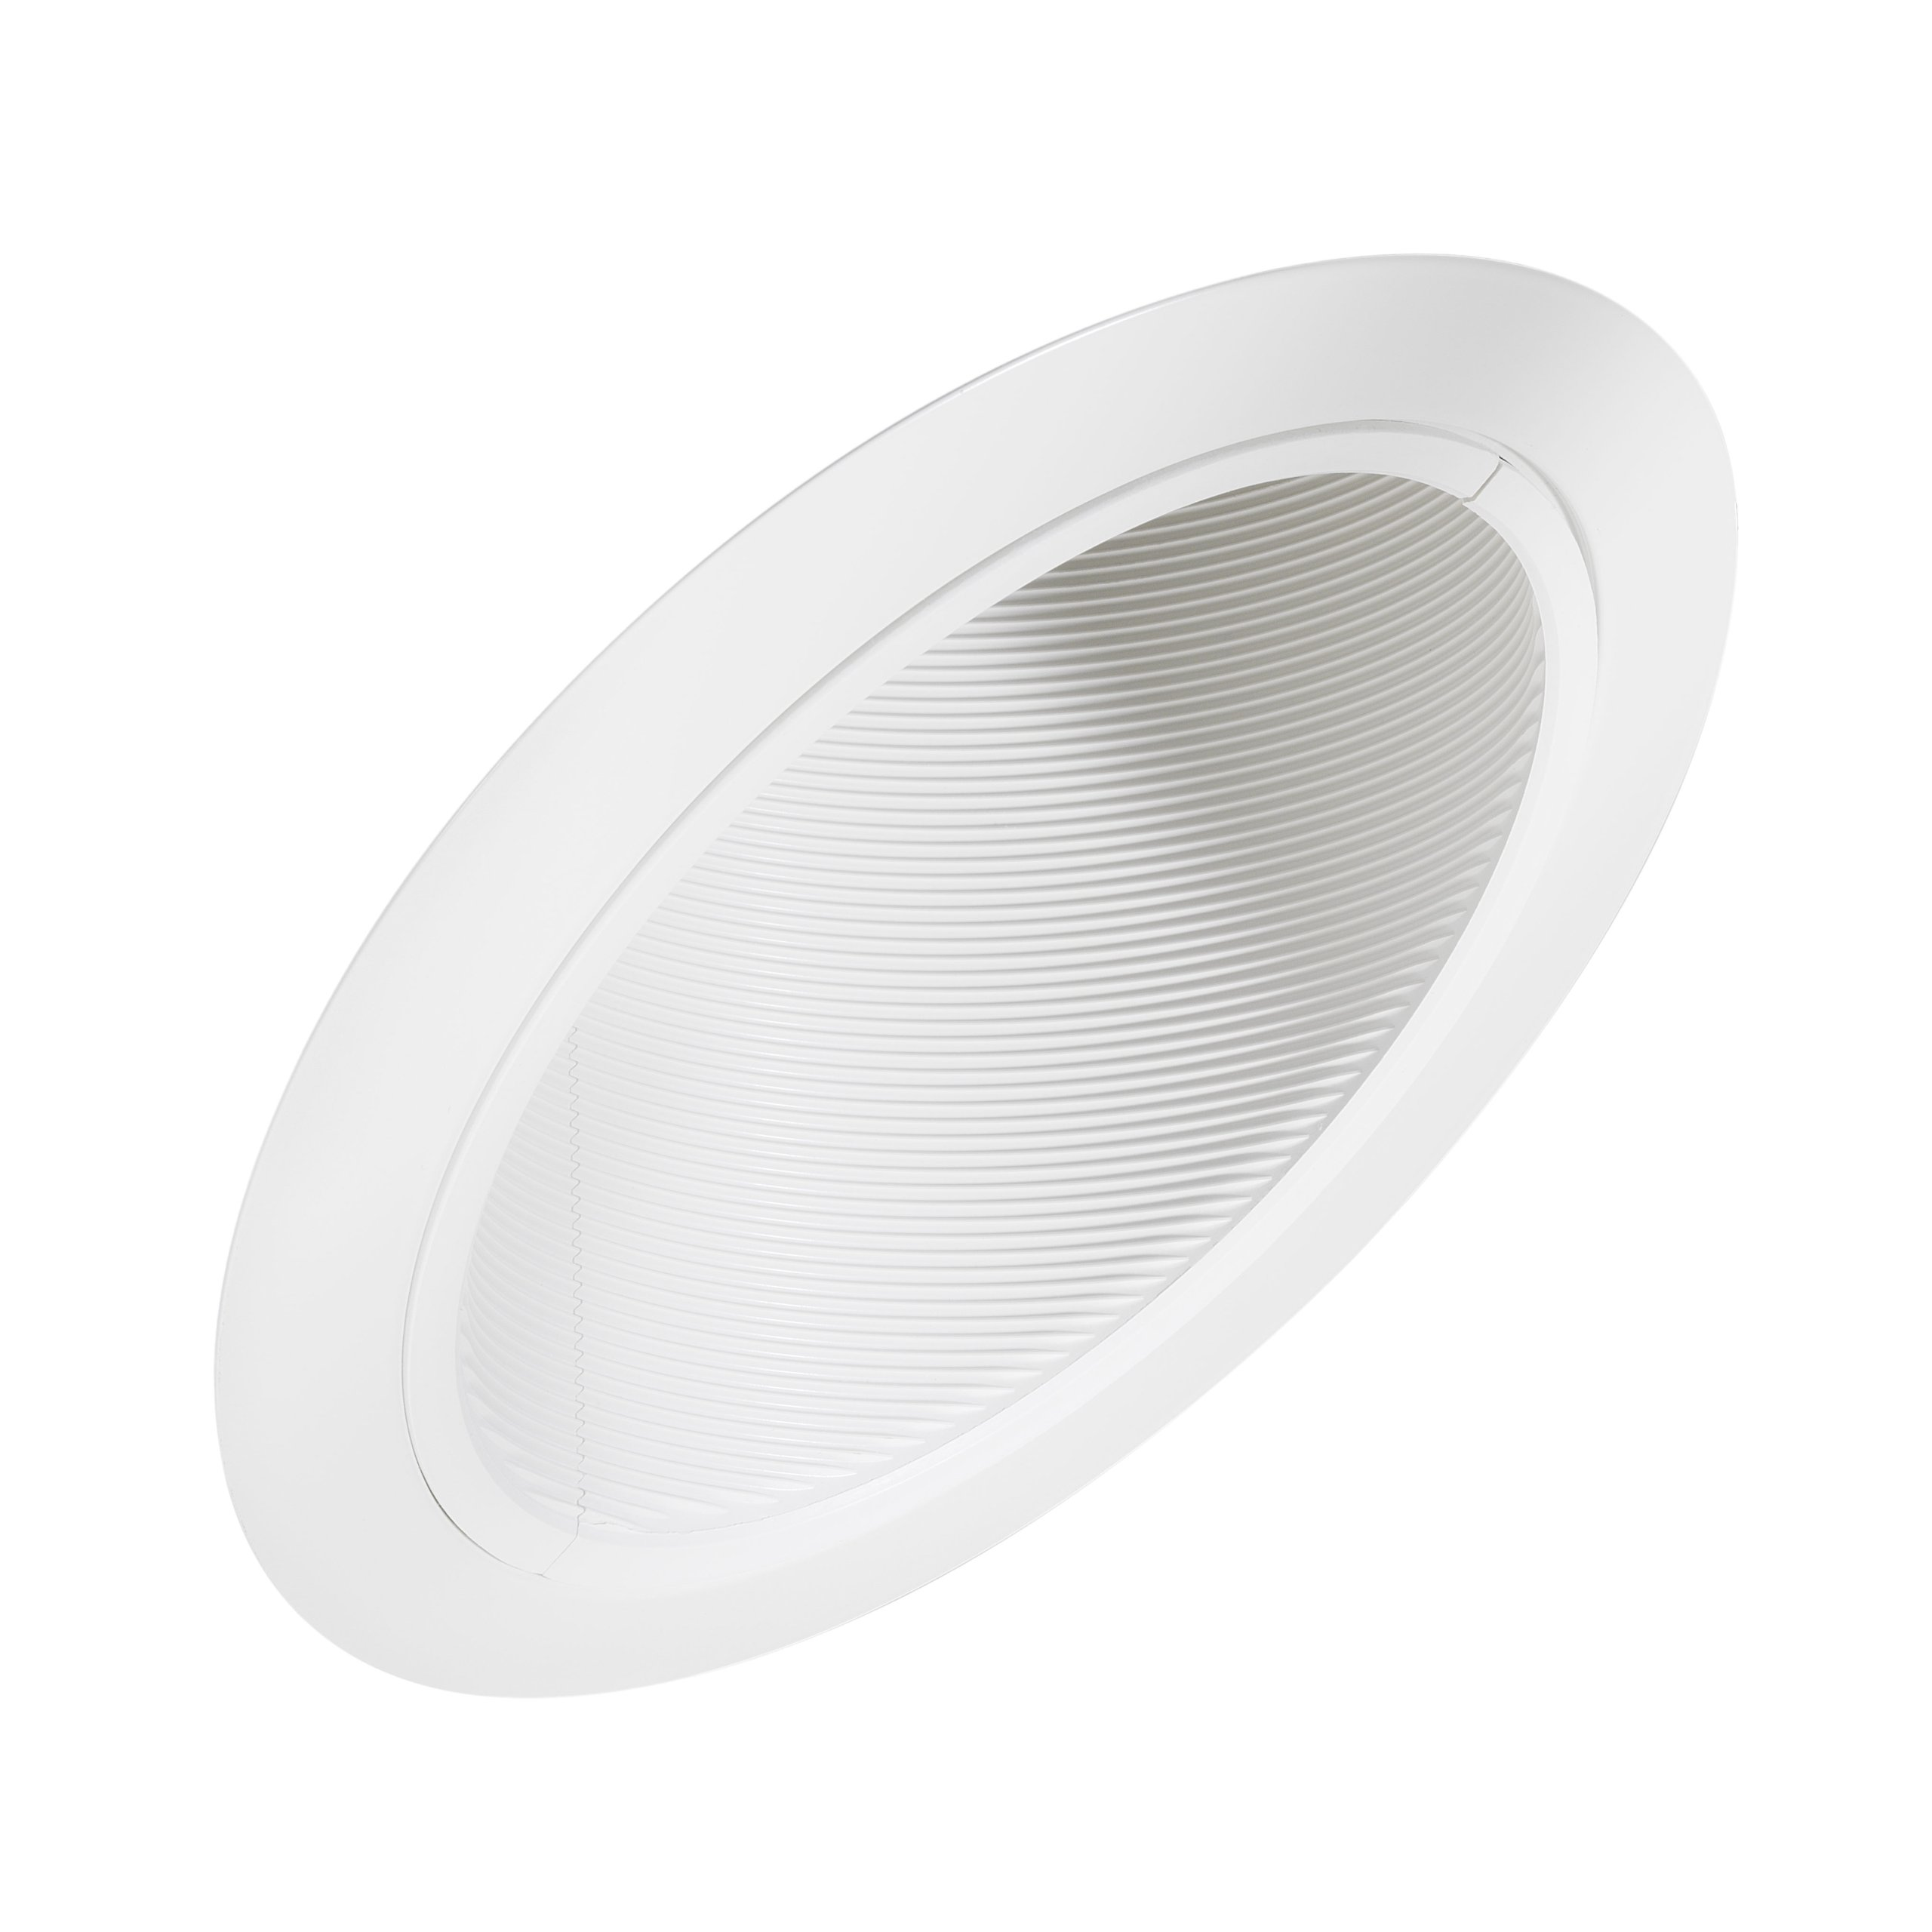 Juno Lighting 604W-WH 6-Inch Super Slope Downlight White Baffle, White Trim by Juno Lighting Group (Image #1)